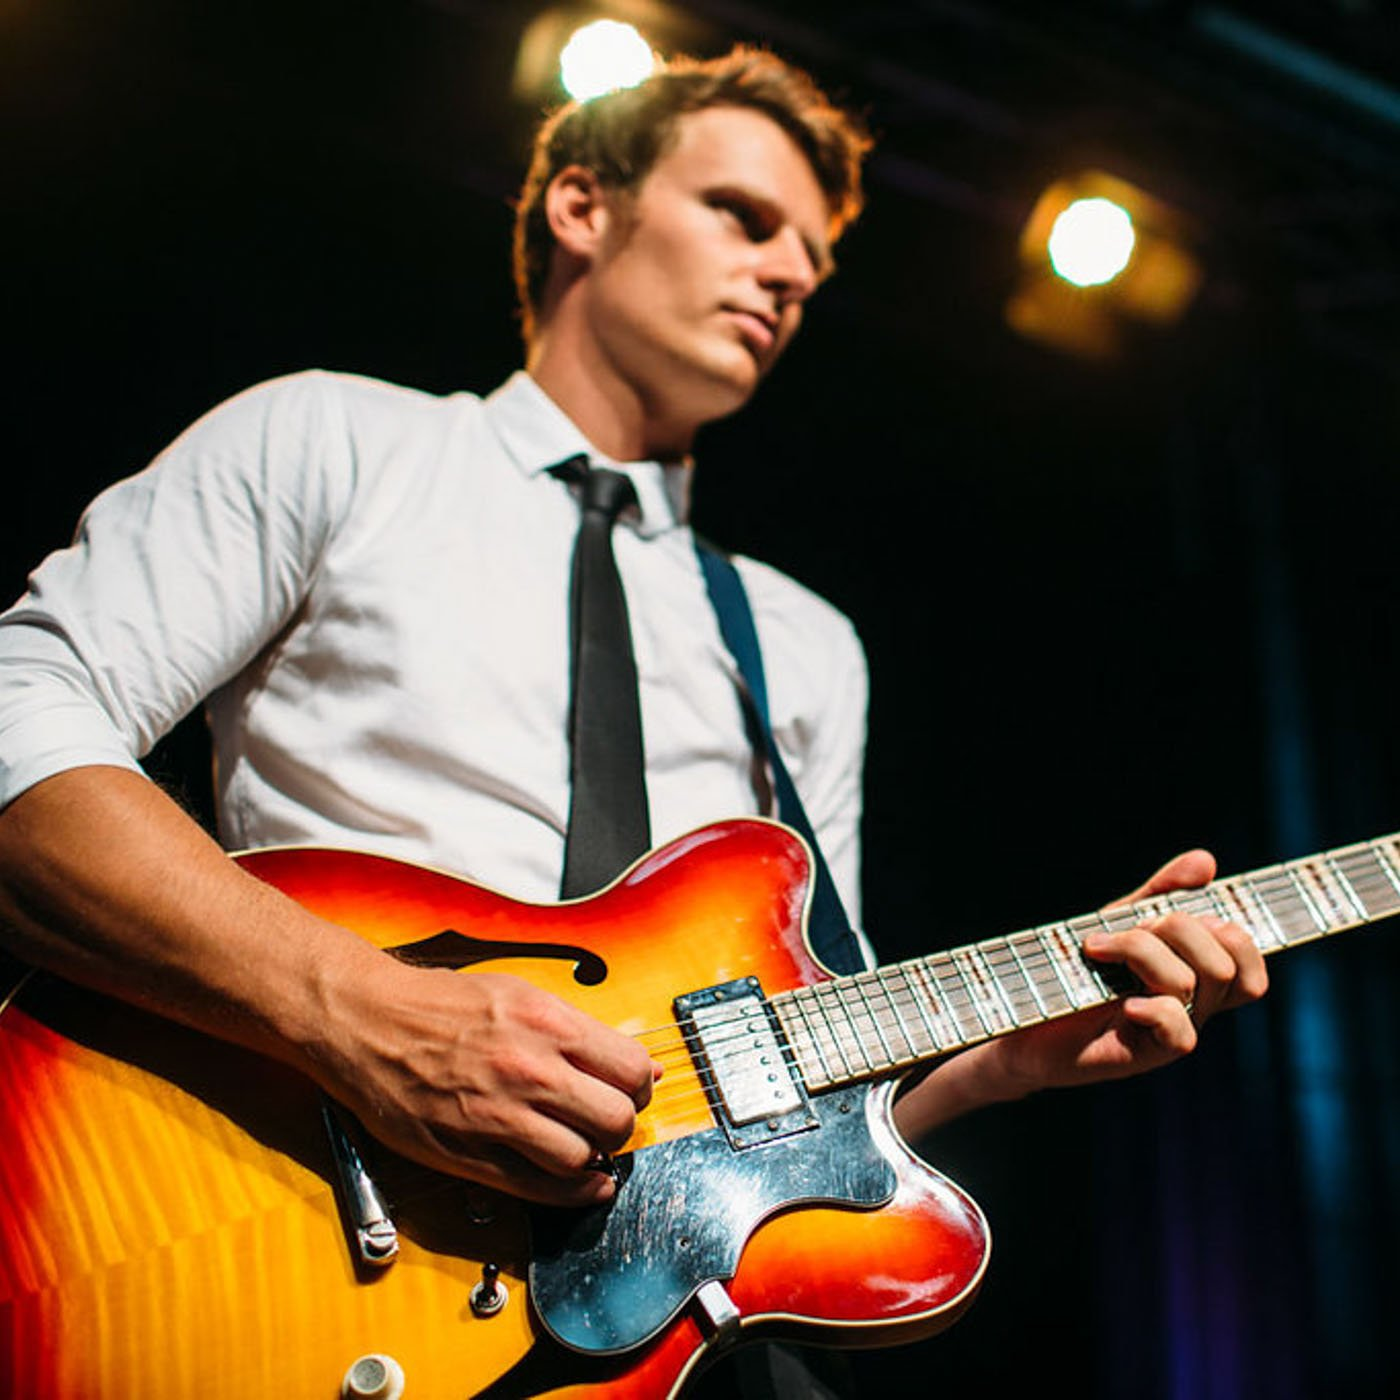 Andrew Scrivens, guitar player for Brisbane Wedding Band, The JImmy Sogalrey Band